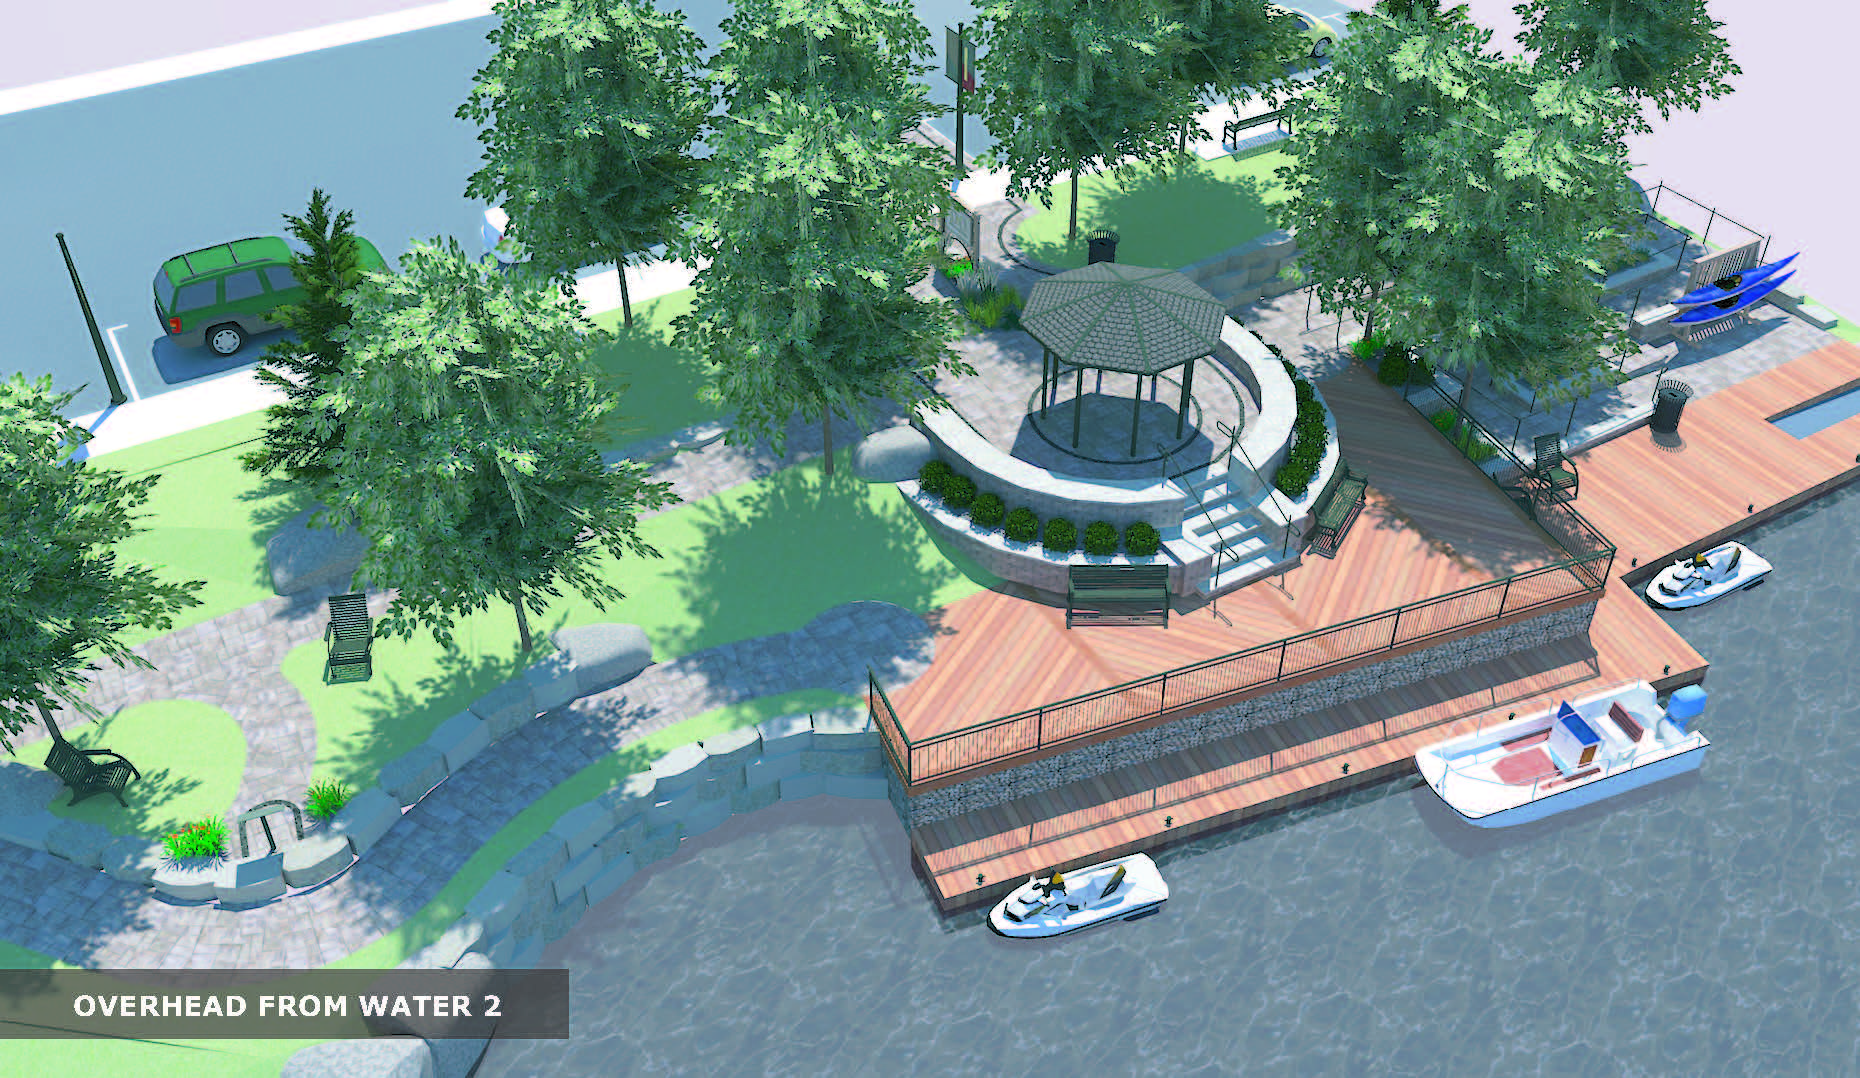 Overhead Water View_Docks_Community Concept_Riverview Design Solutions_Landscape Architecture.jpg